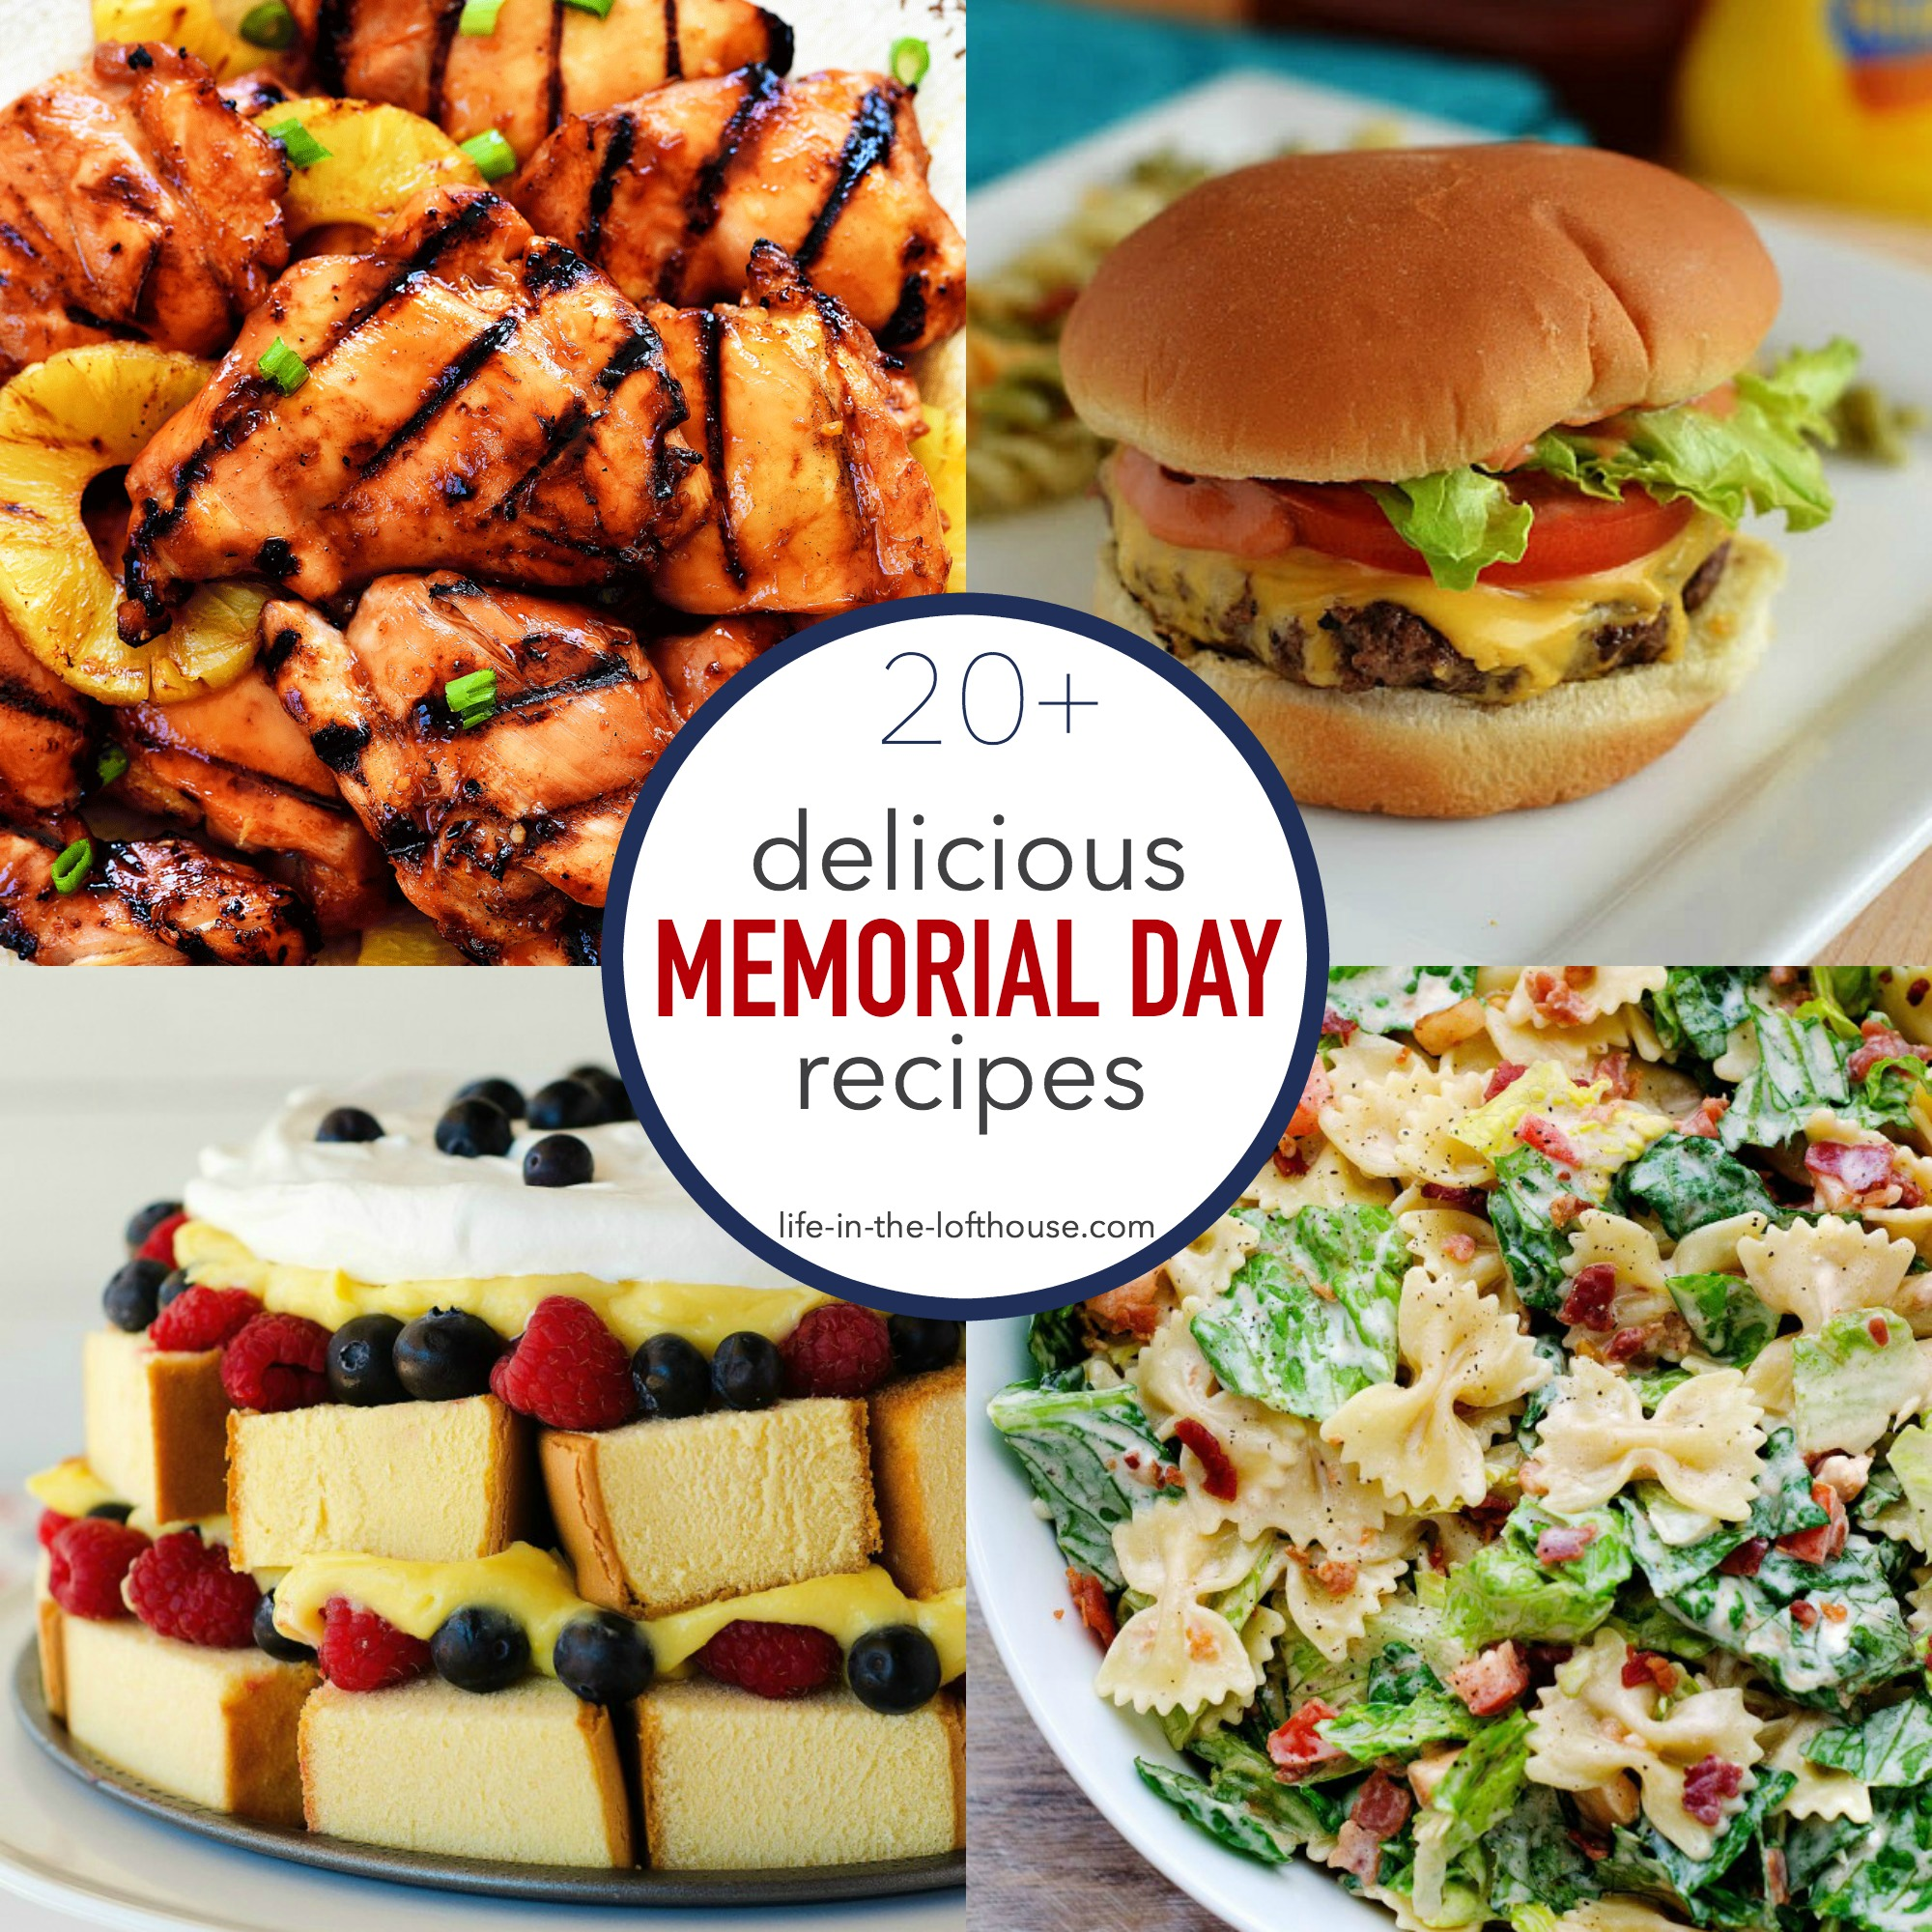 20 delicious memorial day recipes life in the lofthouse for Life in the lofthouse